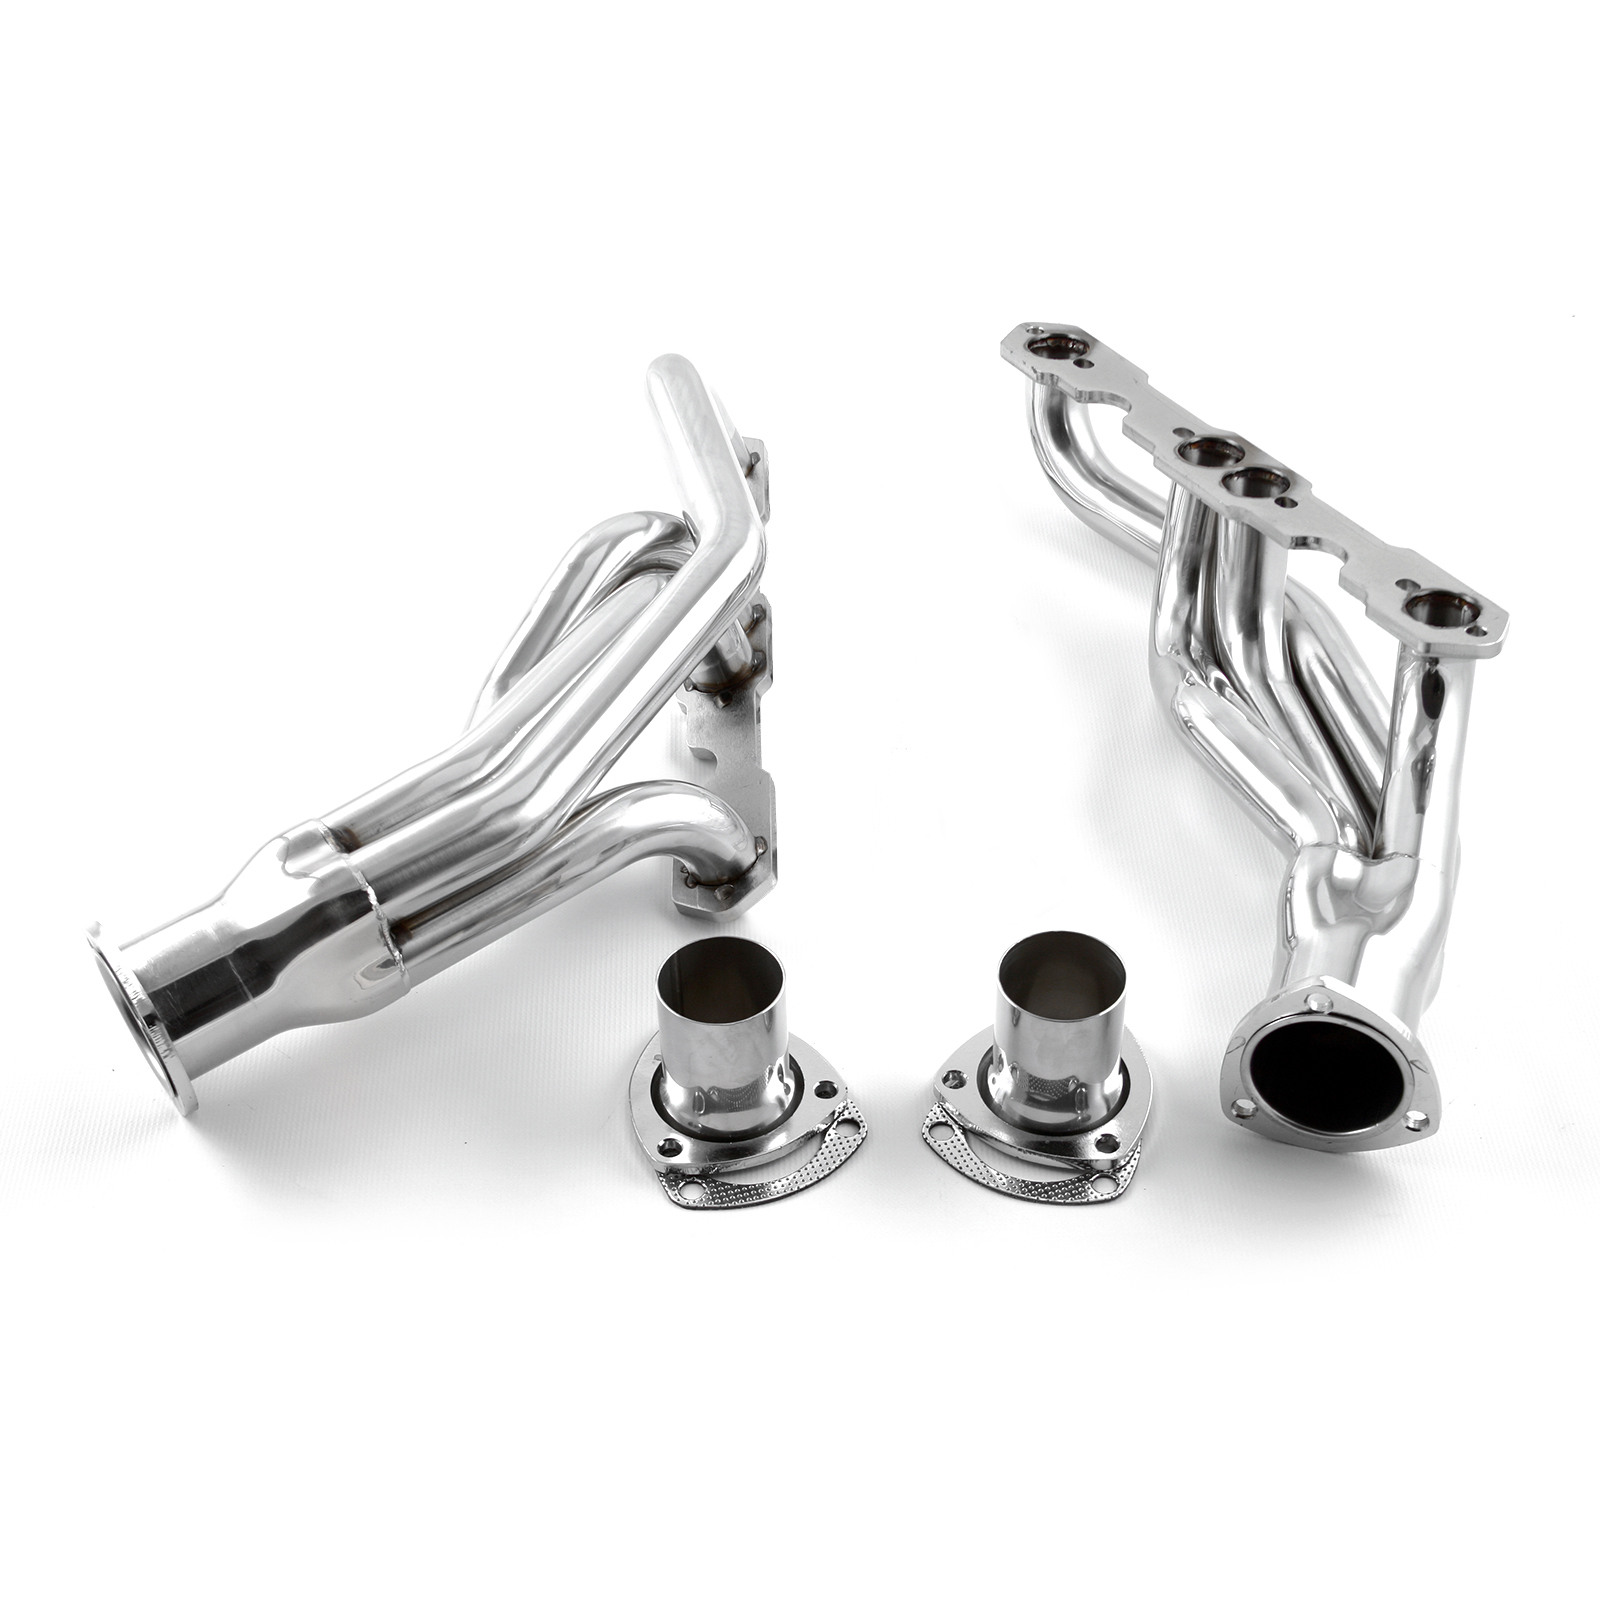 Chevy SBC 350 Chevelle Camaro 1967-81 Chrome Exhaust Headers